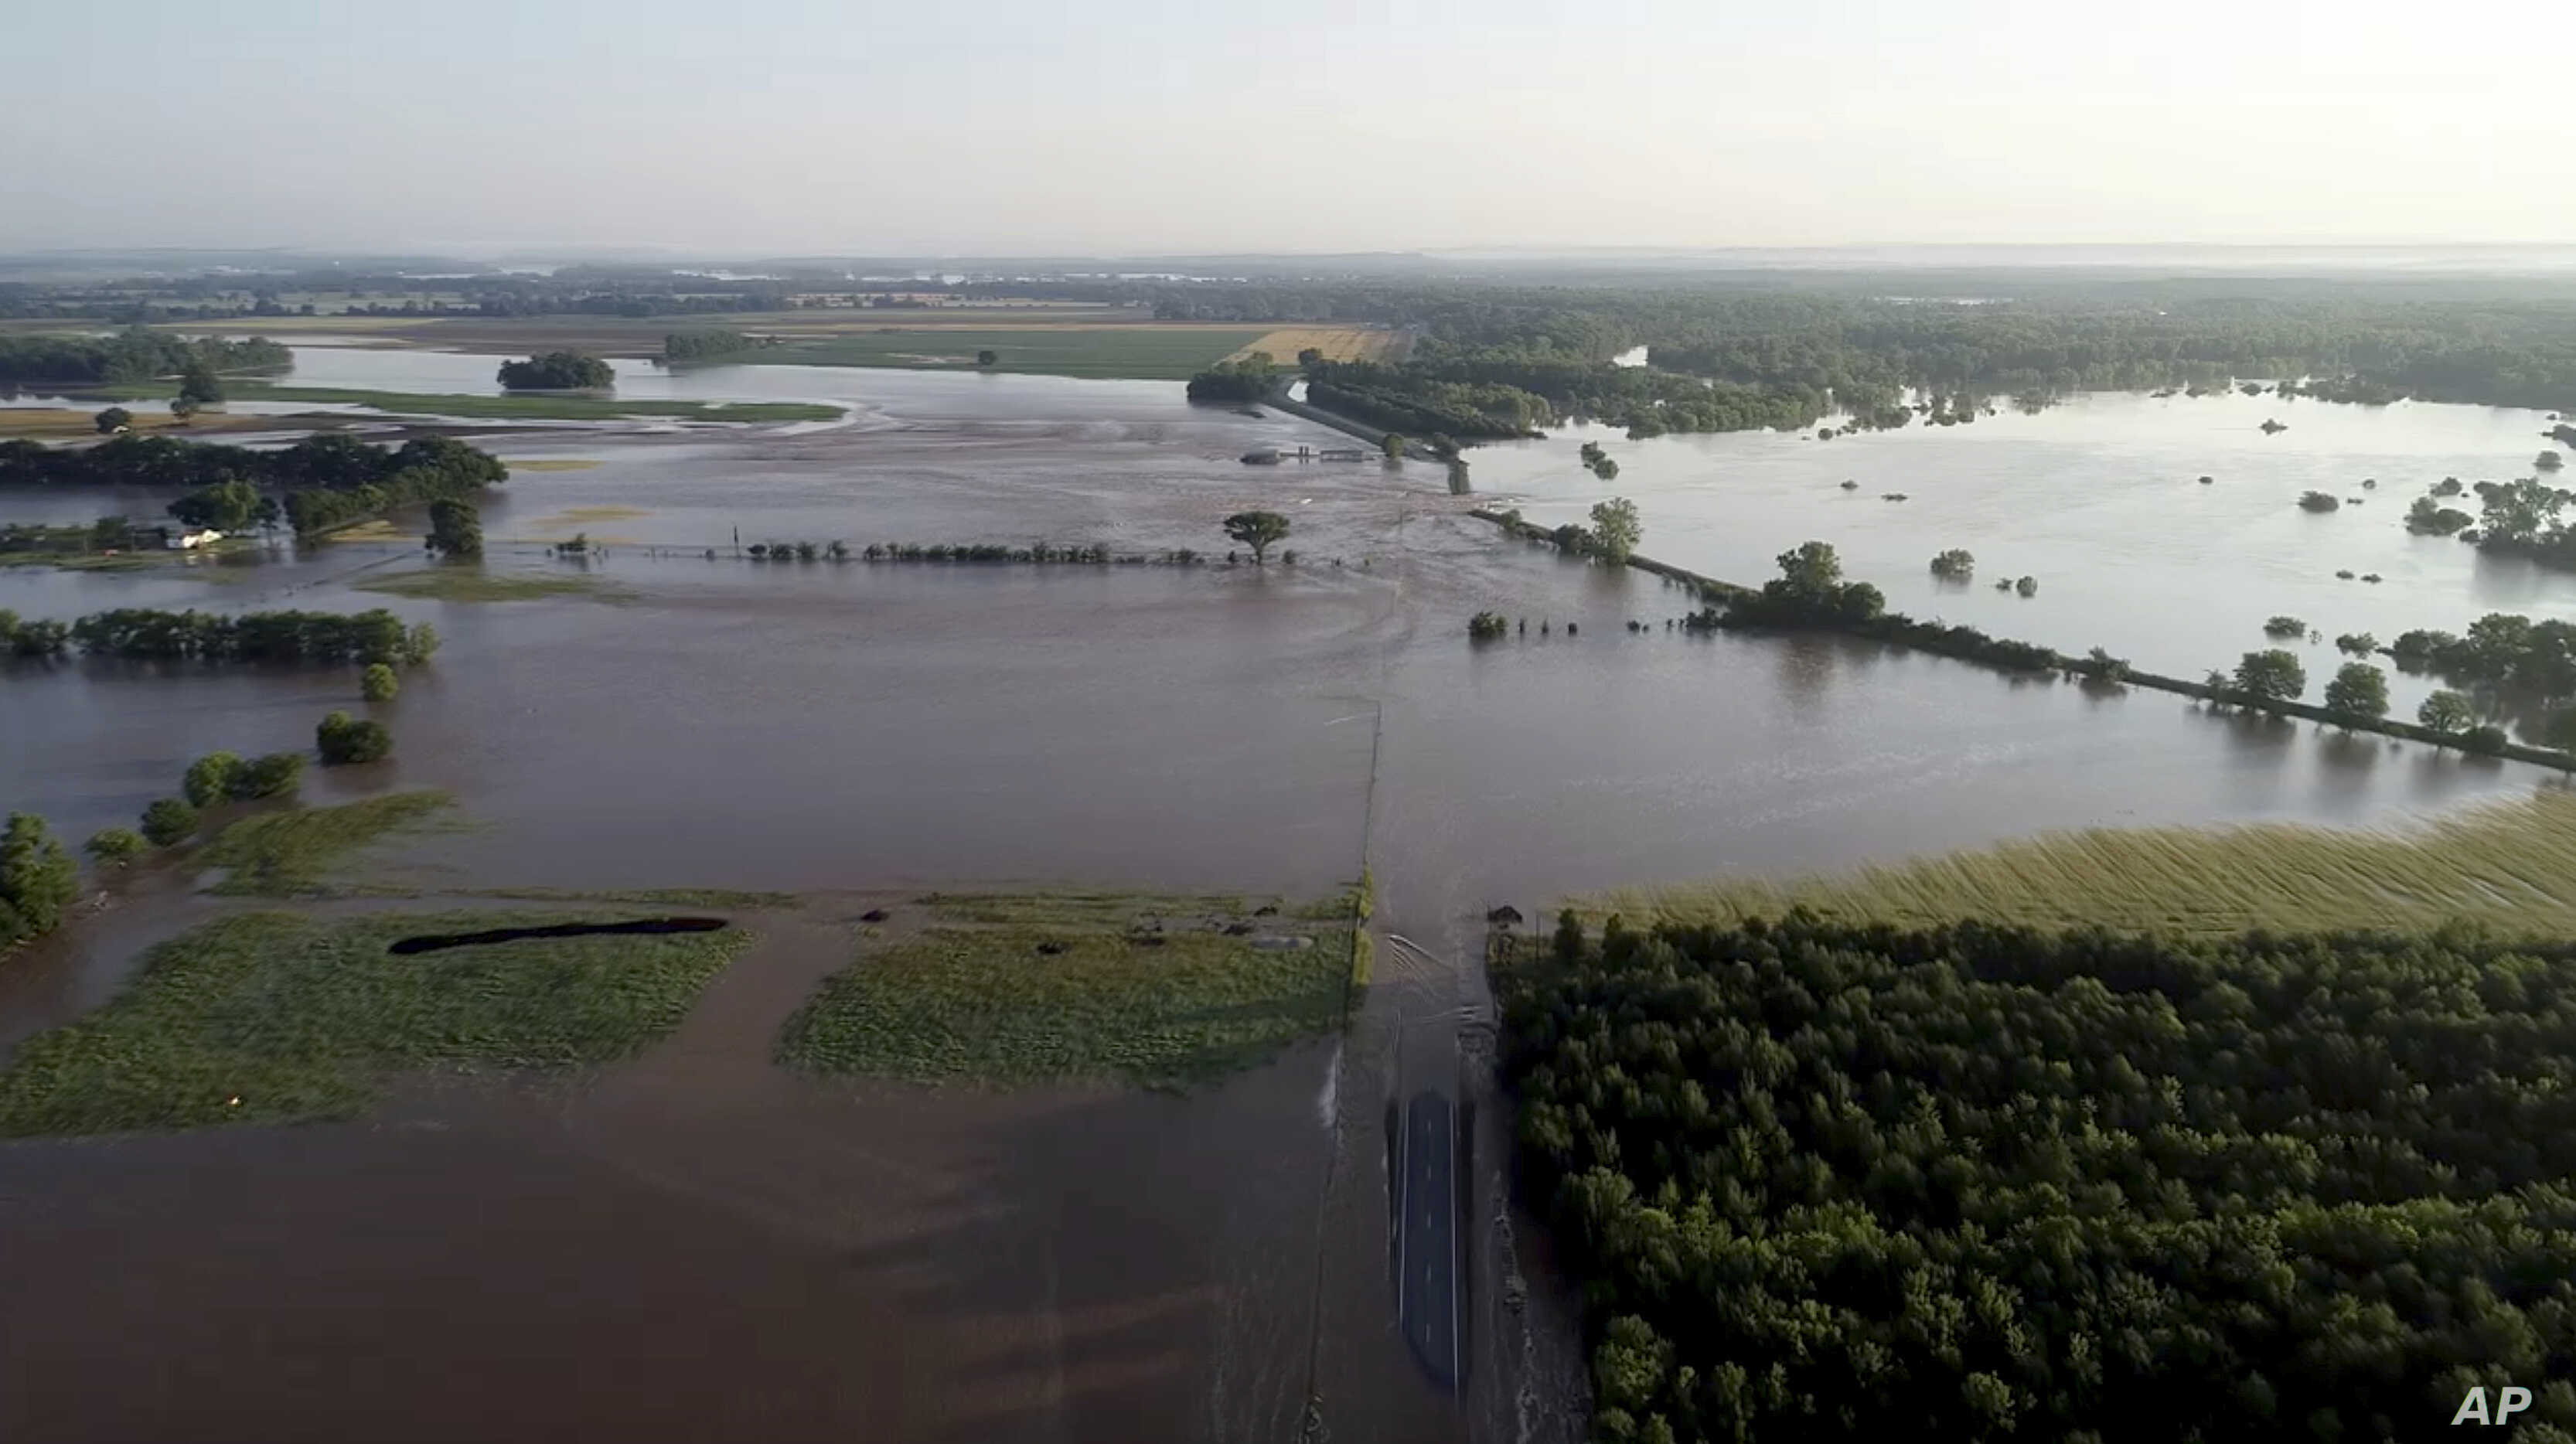 In this aerial image provided by Yell County Sheriff's Department water rushes through the levee along Arkansas River in Dardanelle, Ark., May 31, 2019. Officials say the levee breached early Friday at Dardanelle, about 60 miles northwest of Little R...